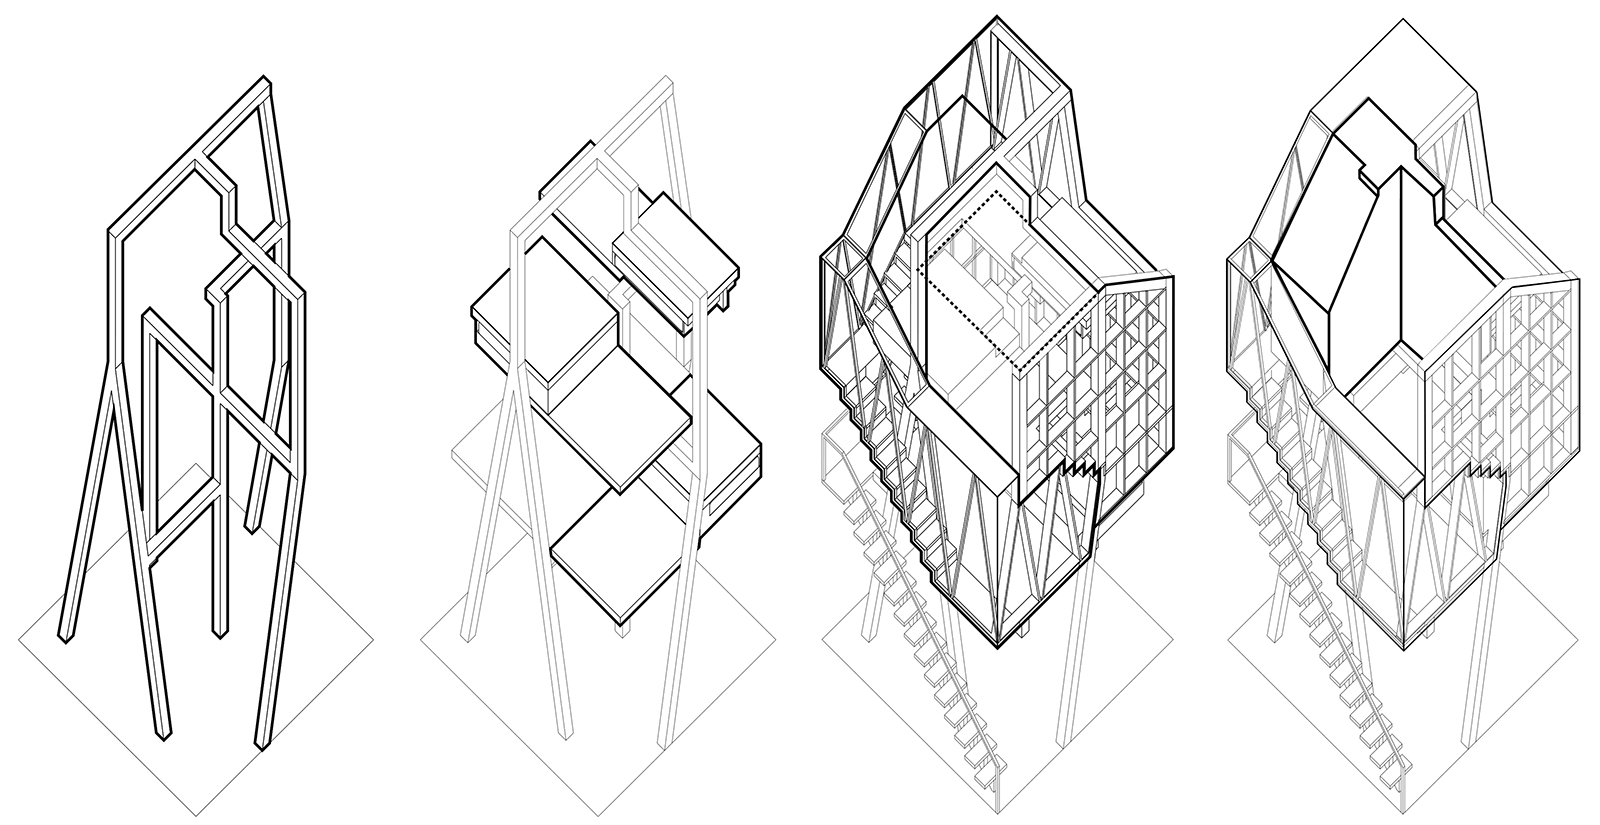 Series of axonometric drawings of the various components of the CTST infill unit constructions